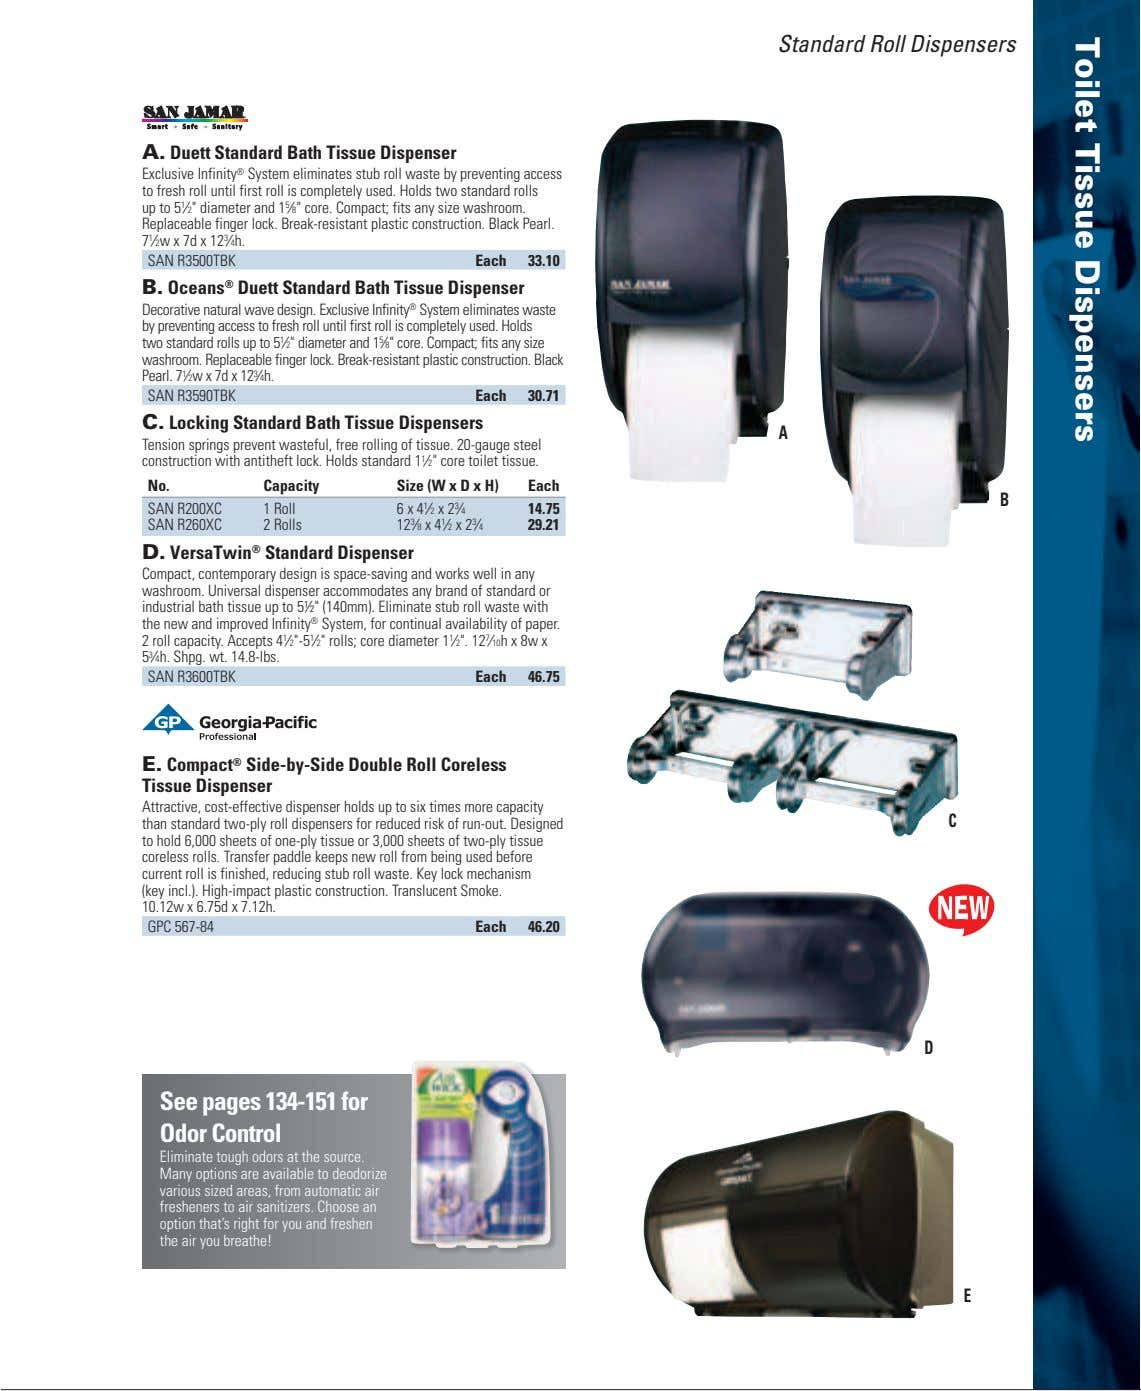 Standard Roll Dispensers A. Duett Standard Bath Tissue Dispenser Exclusive Infinity ® System eliminates stub